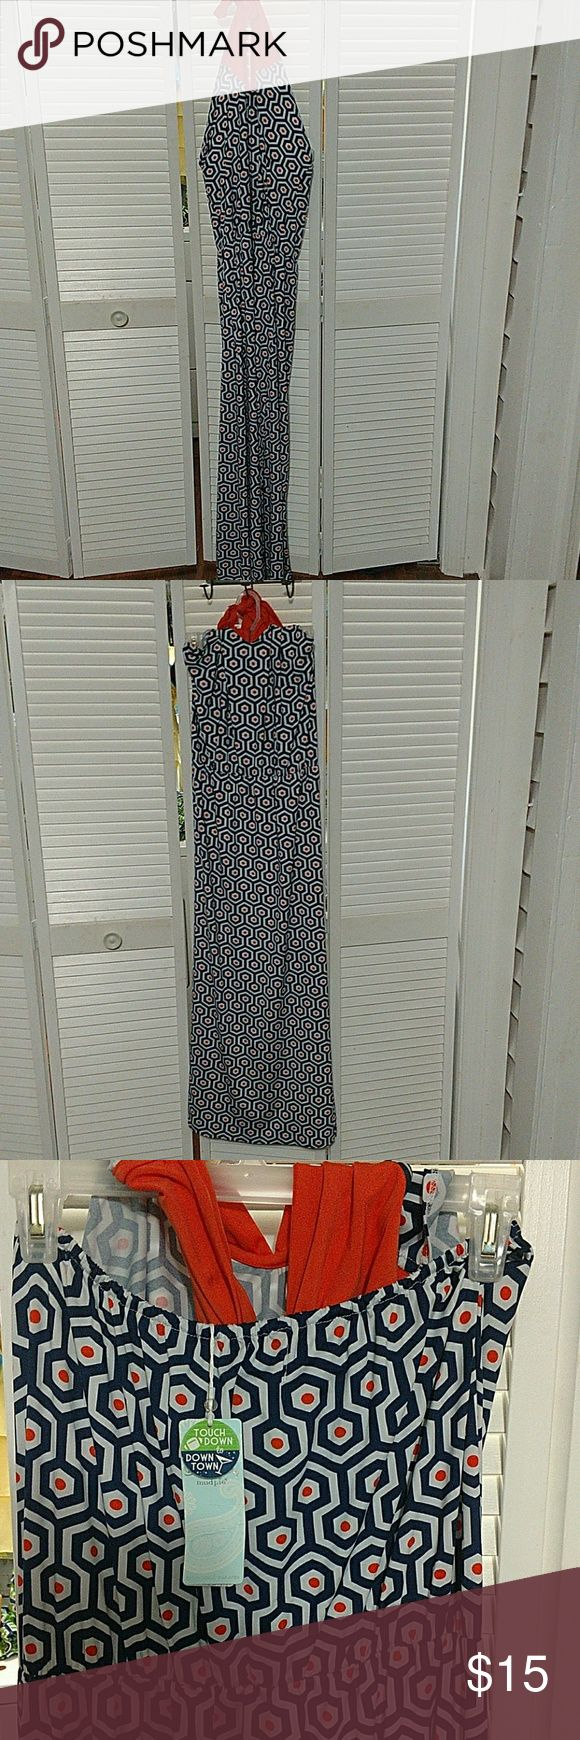 Mud Pie 3-way orange and navy maxi dress Mud Pie 3-way orange and navy maxi dress. Elastic for fitting detail at waist. Can be worn strapless with tie at front, halter tie around neck, and pareo with tie at bust and around neck. New with tags. Mud Pie Dresses Maxi